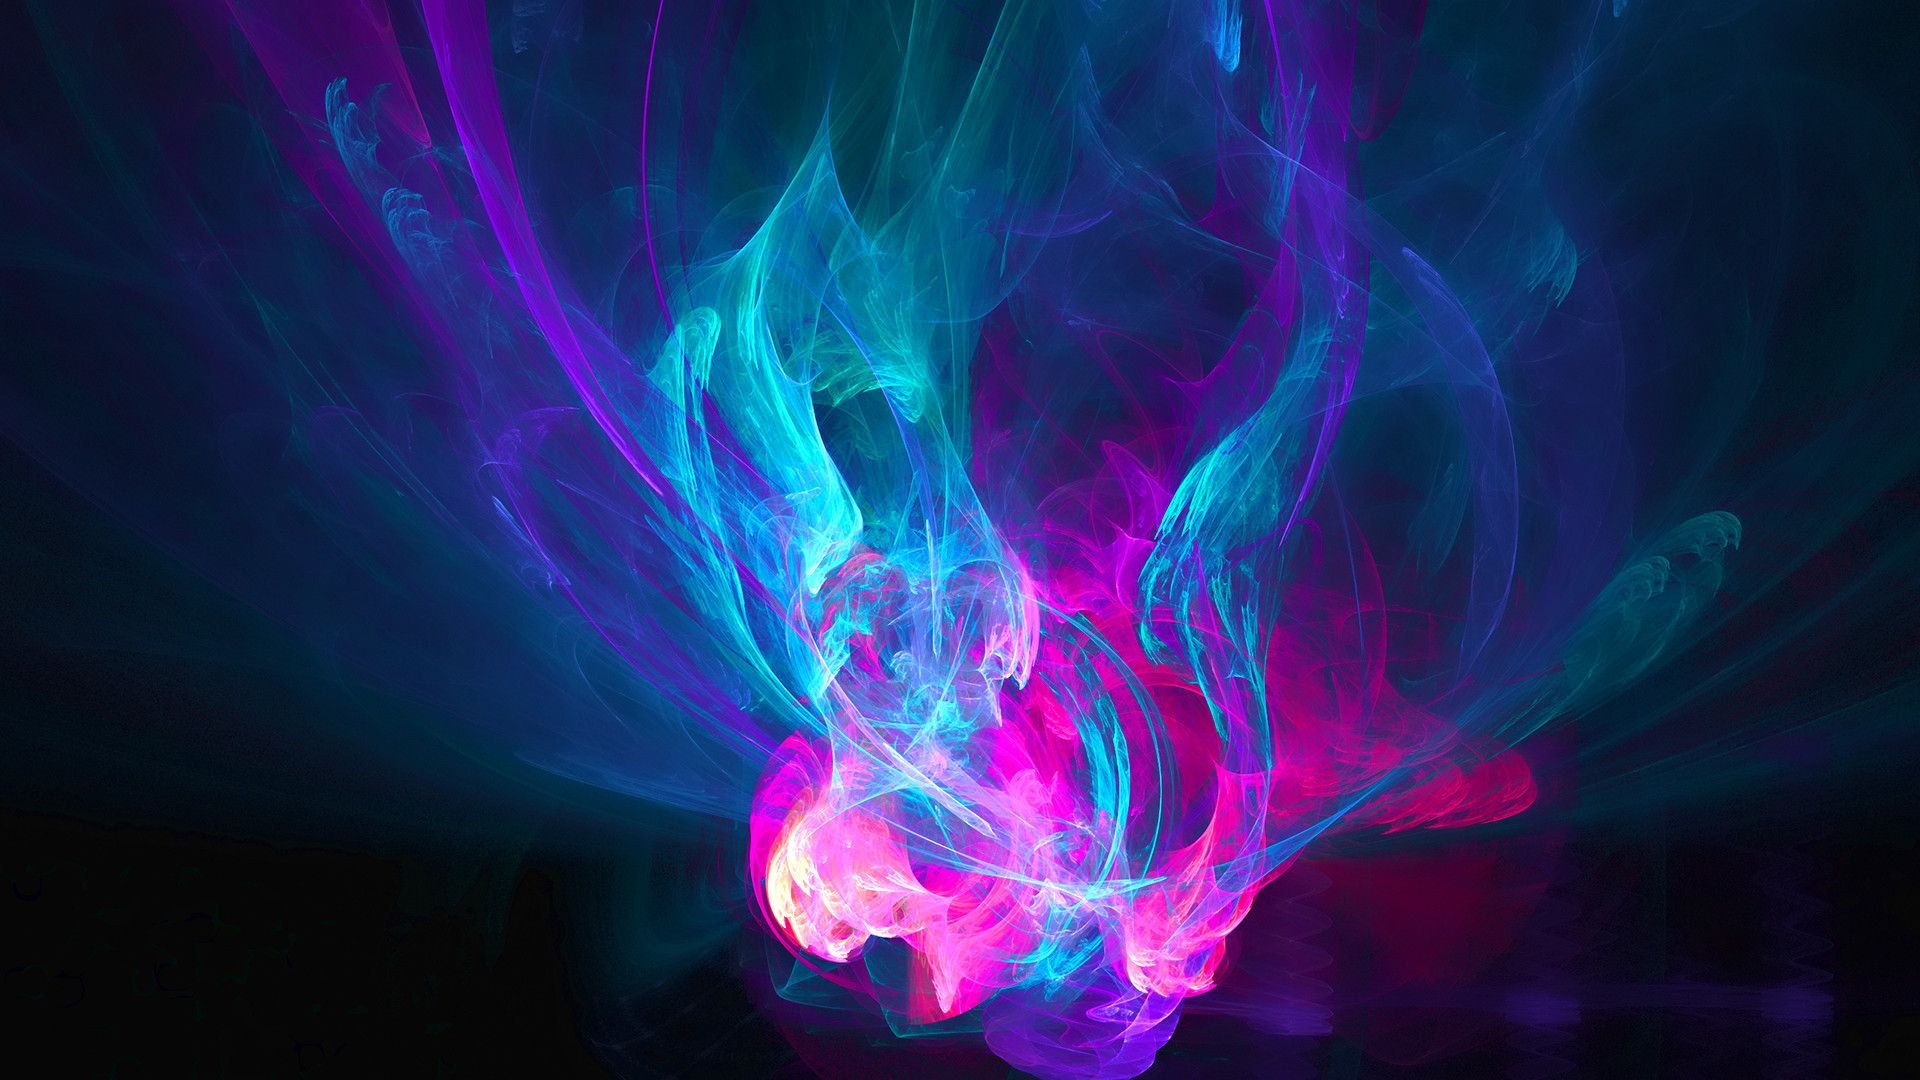 Abstract Fire Pink Blue Purple Patterns Hd Wallpaper Hd Desktop Wallpapers Cool Images Hd Do Cool Purple Background Purple Backgrounds Wallpaper Pink And Blue